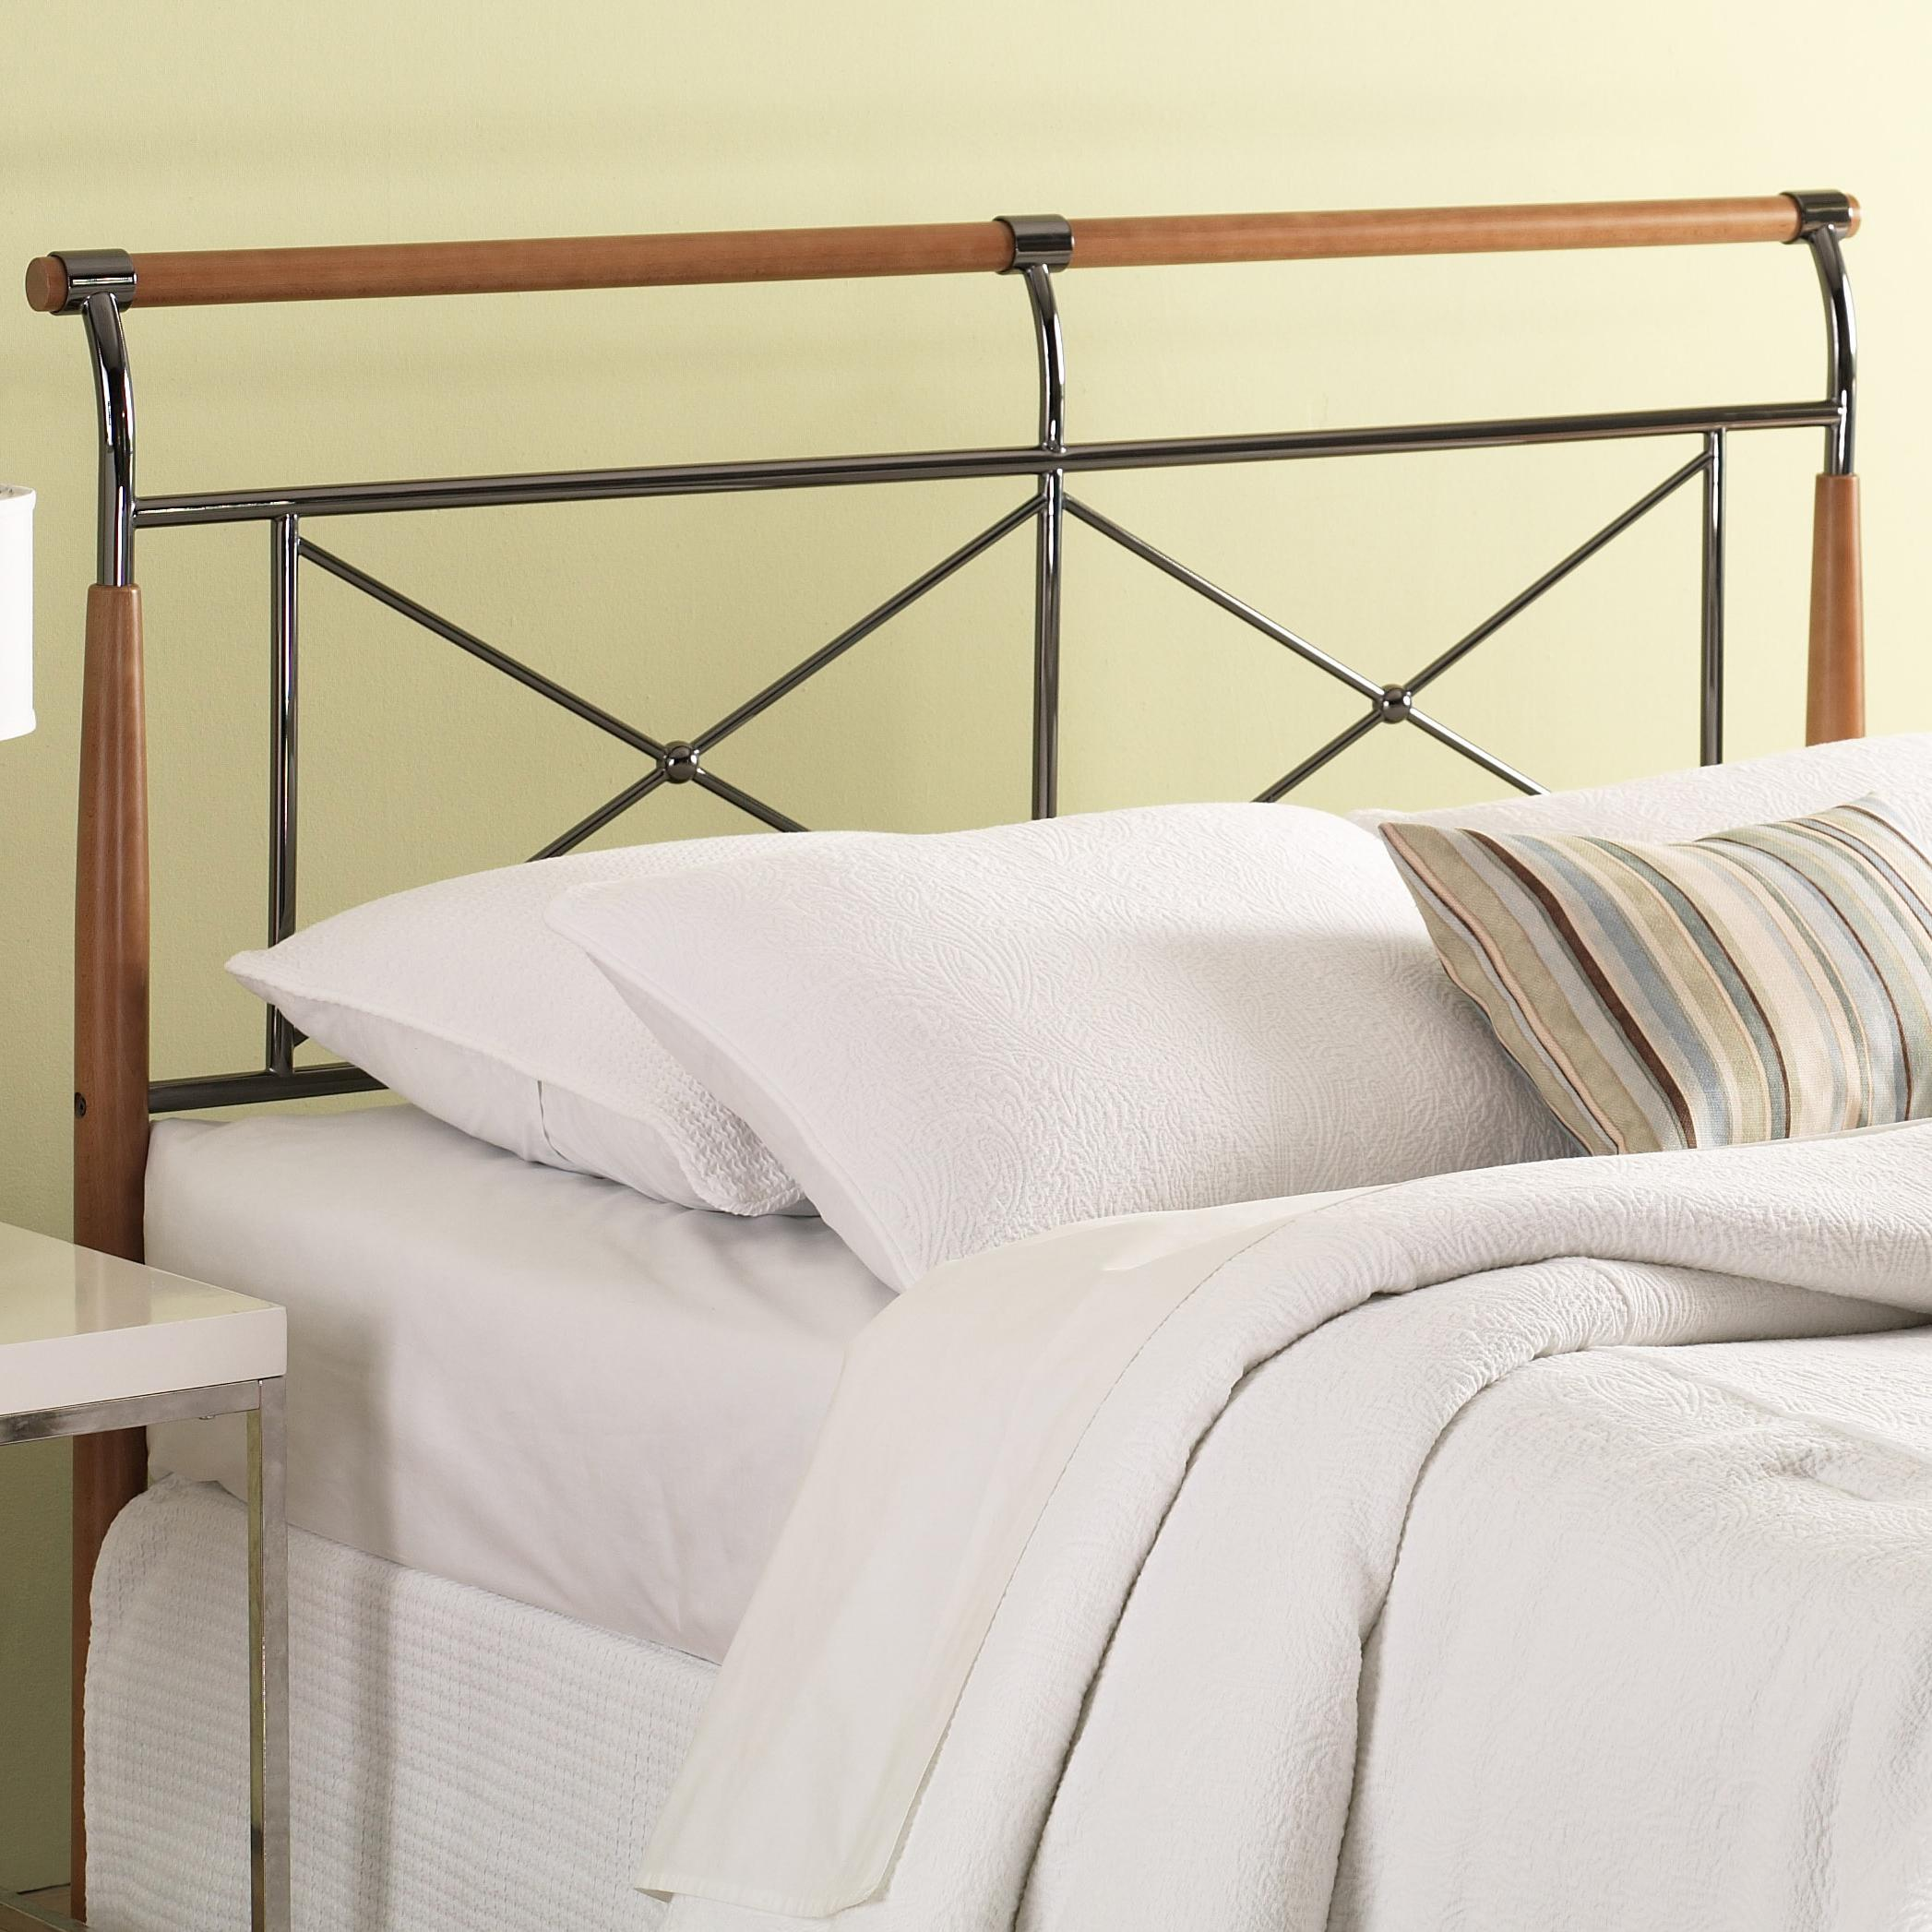 fashion bed group wood and metal beds queen kendall headboard ahfa